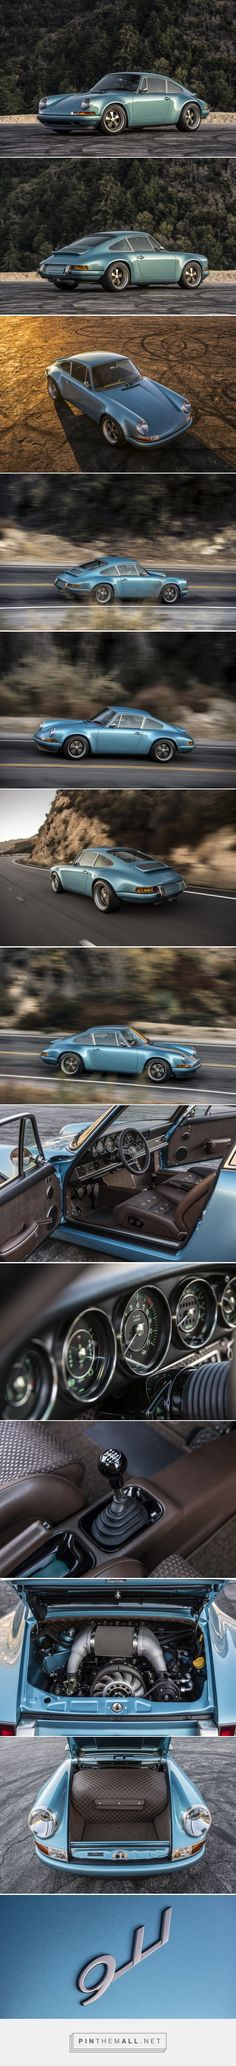 This Restomod Porsche 911 Is Cooler Than Cool